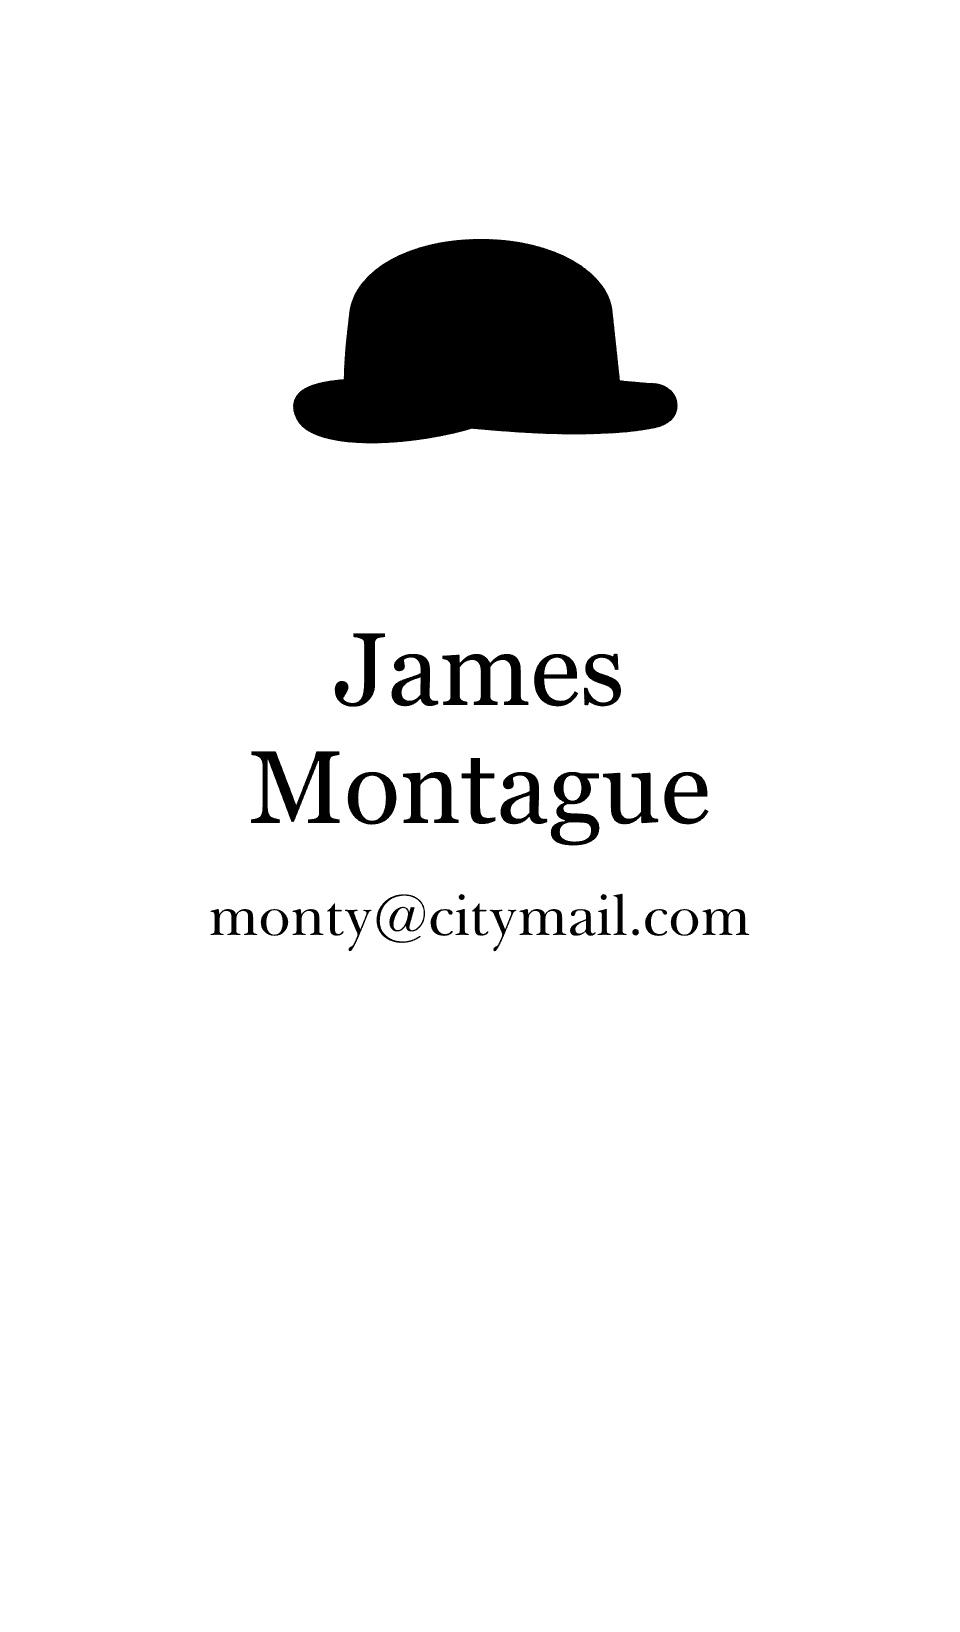 Personalised Stationery : Berkeley : Montague